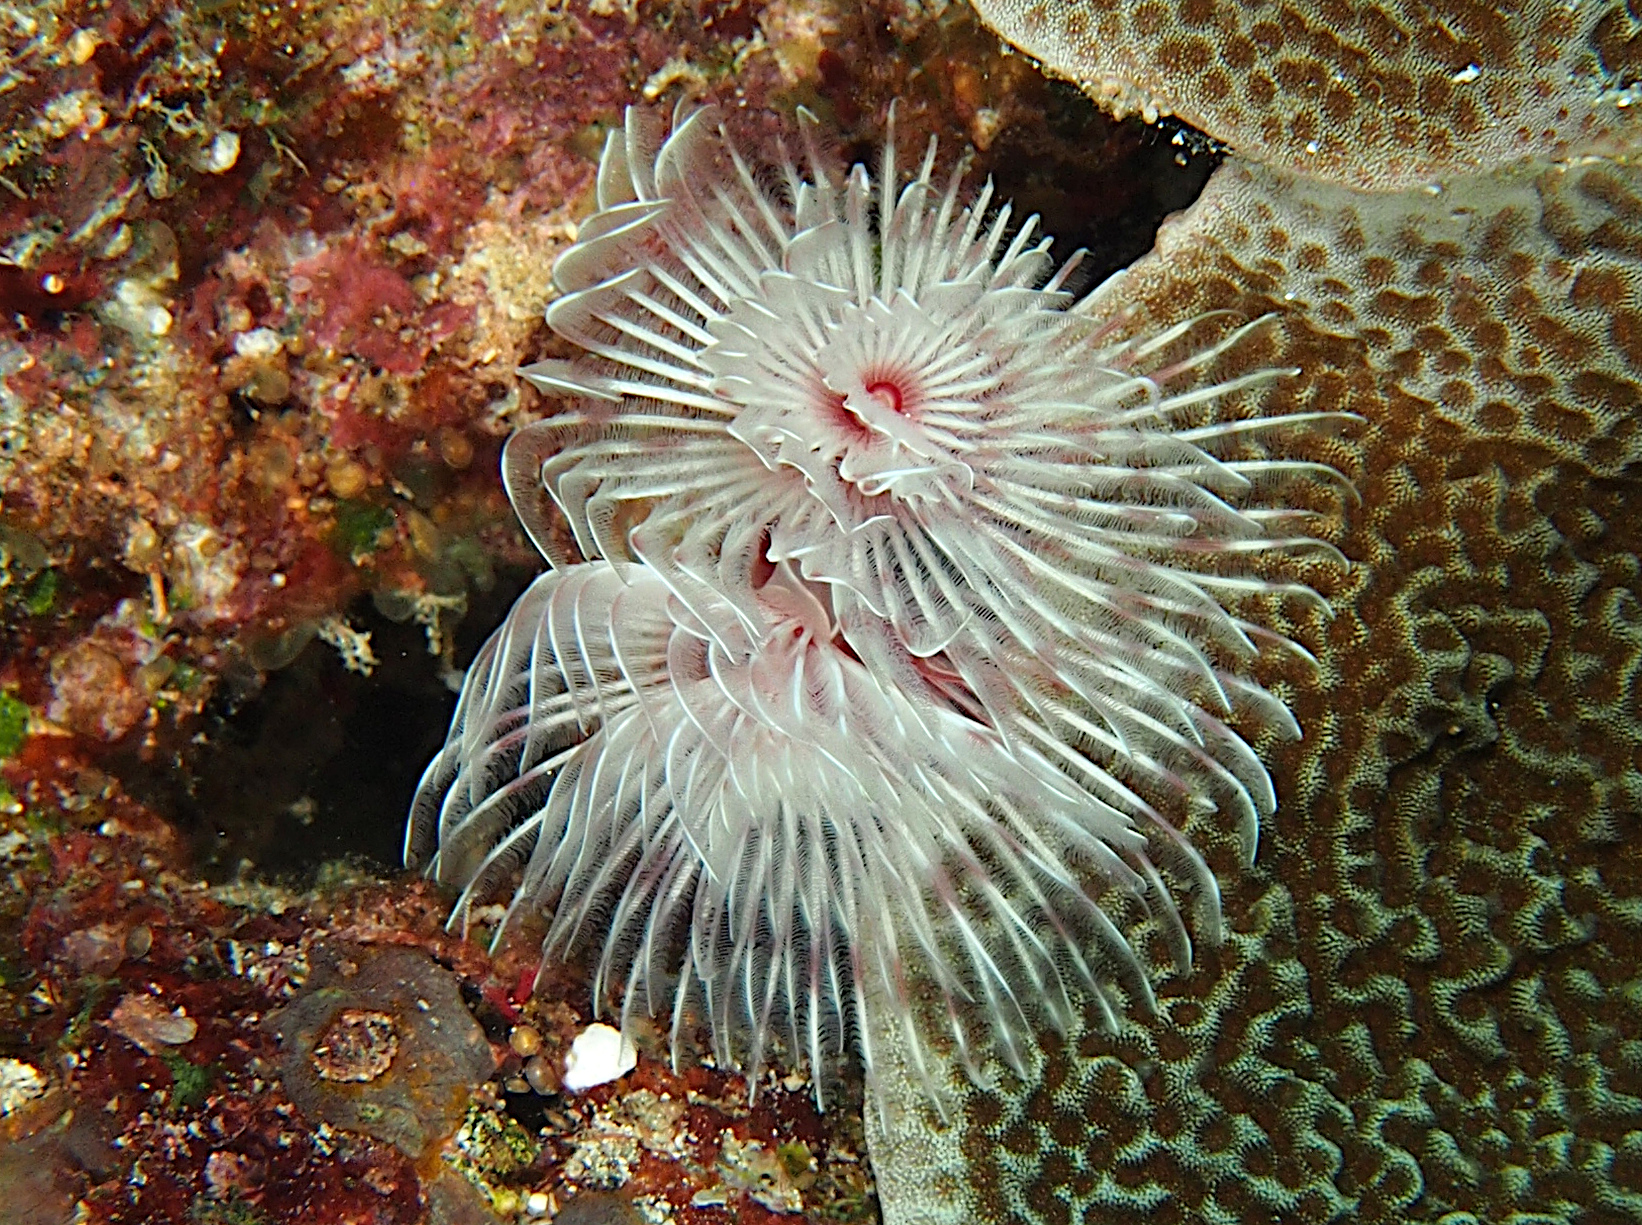 Magnificent Tube Worm - Protula bispiralis - Wakatobi, Indonesia